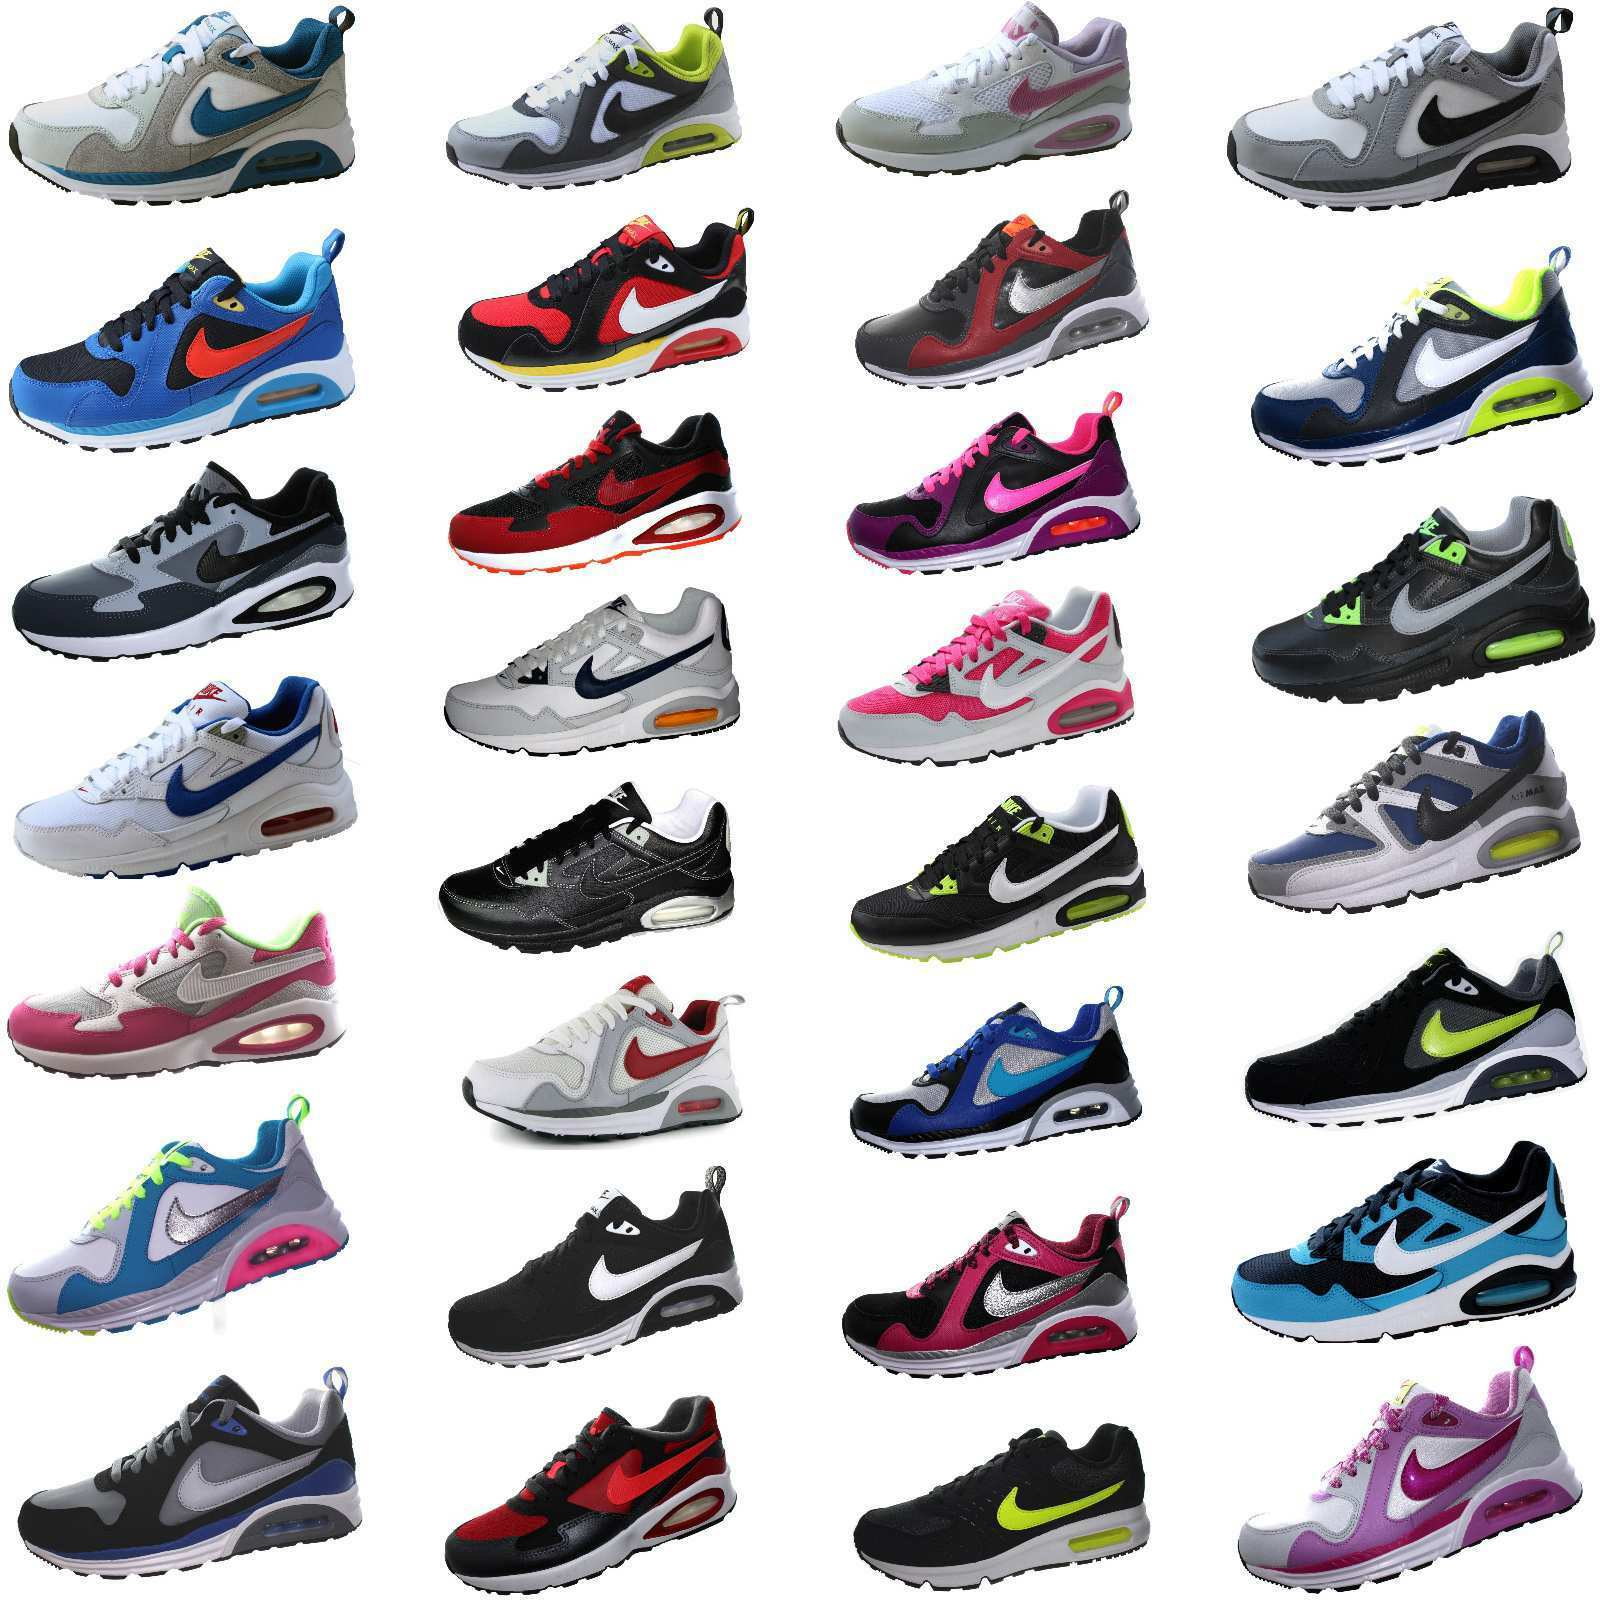 Nike Air Max trax skyline command Baskets véritable cuir Chaussures solace baskets